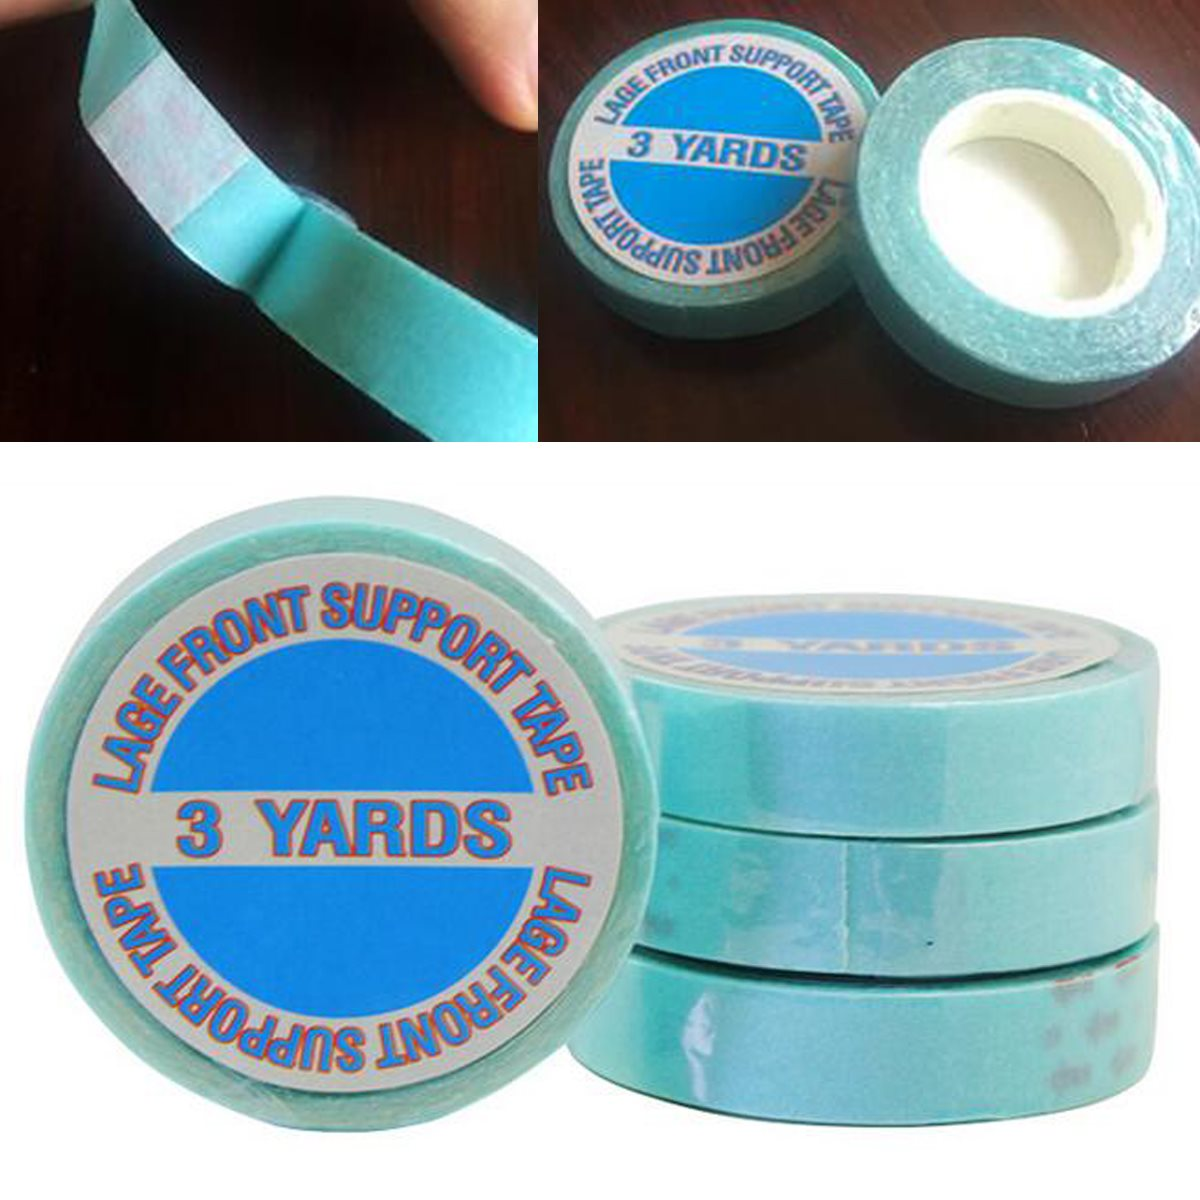 Hair Extensions & Wigs Tools & Accessories 1 Roll 1 Cm*3 Yards Super Hair Blue Tape Double-sided Adhesive Tape For Hair Extension/lace Wig/toupee